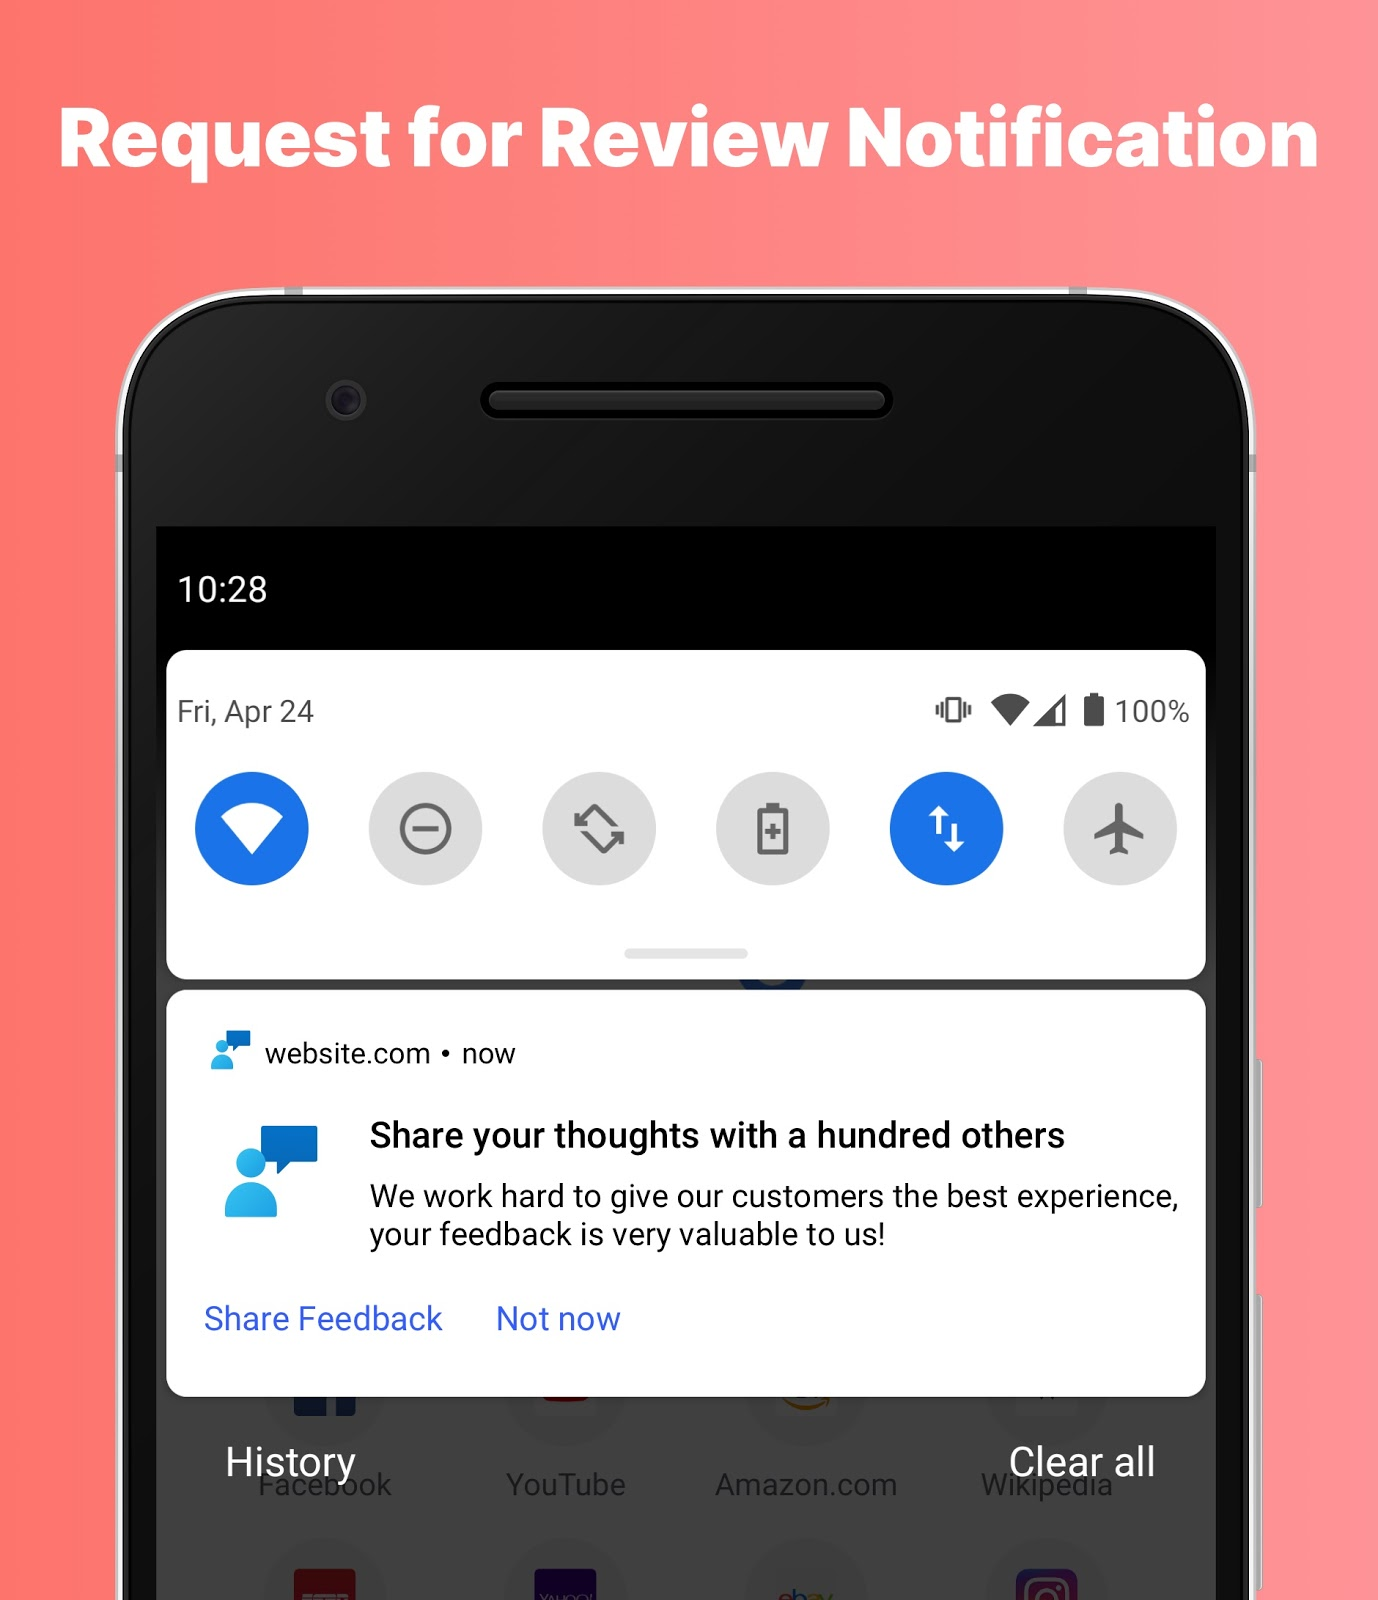 Example of a request for review push notification